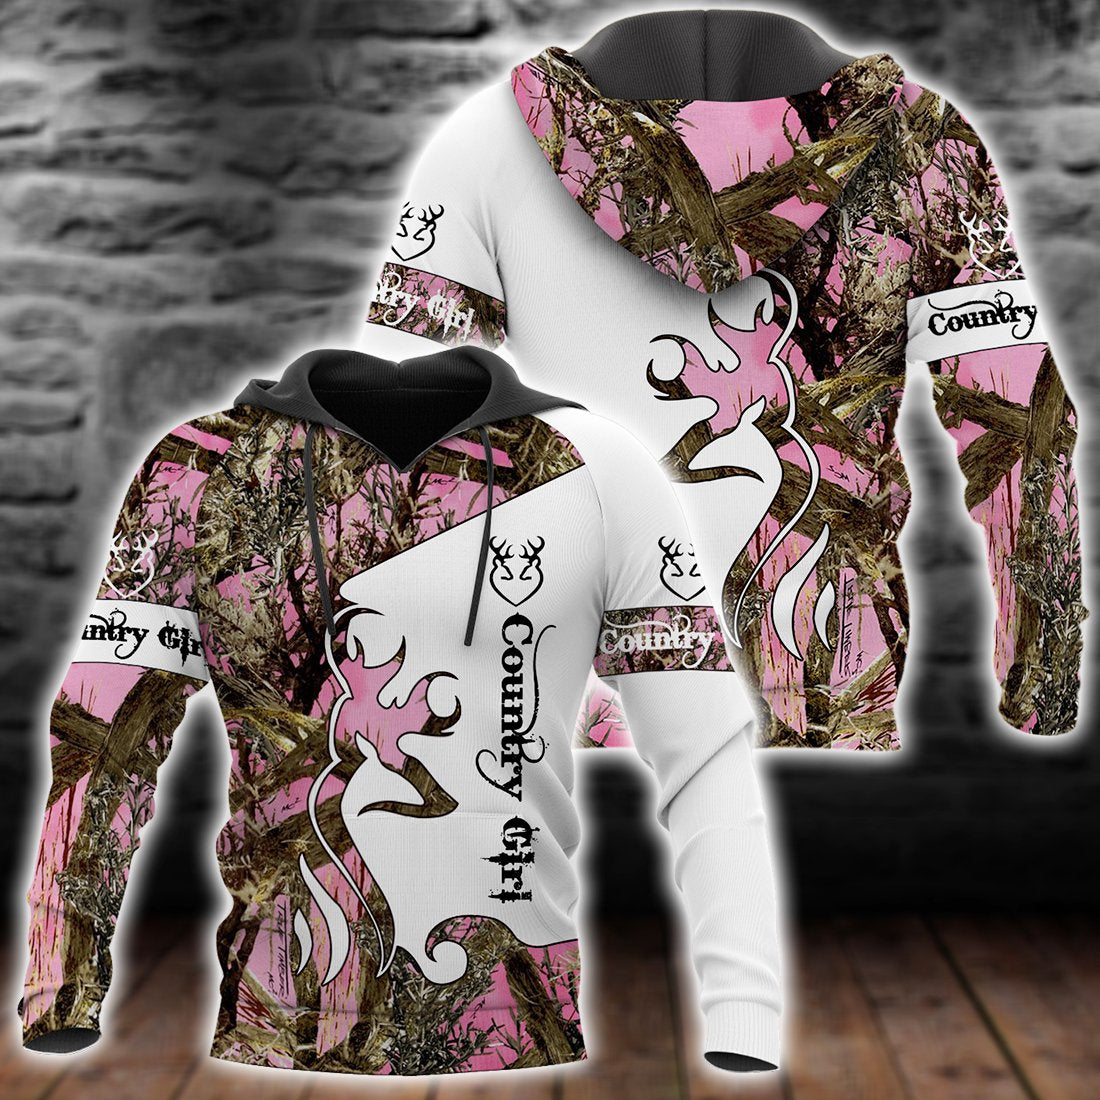 A COUNTRY GIRL ALL OVER PRINT SHIRT FOR MEN AND WOMEN